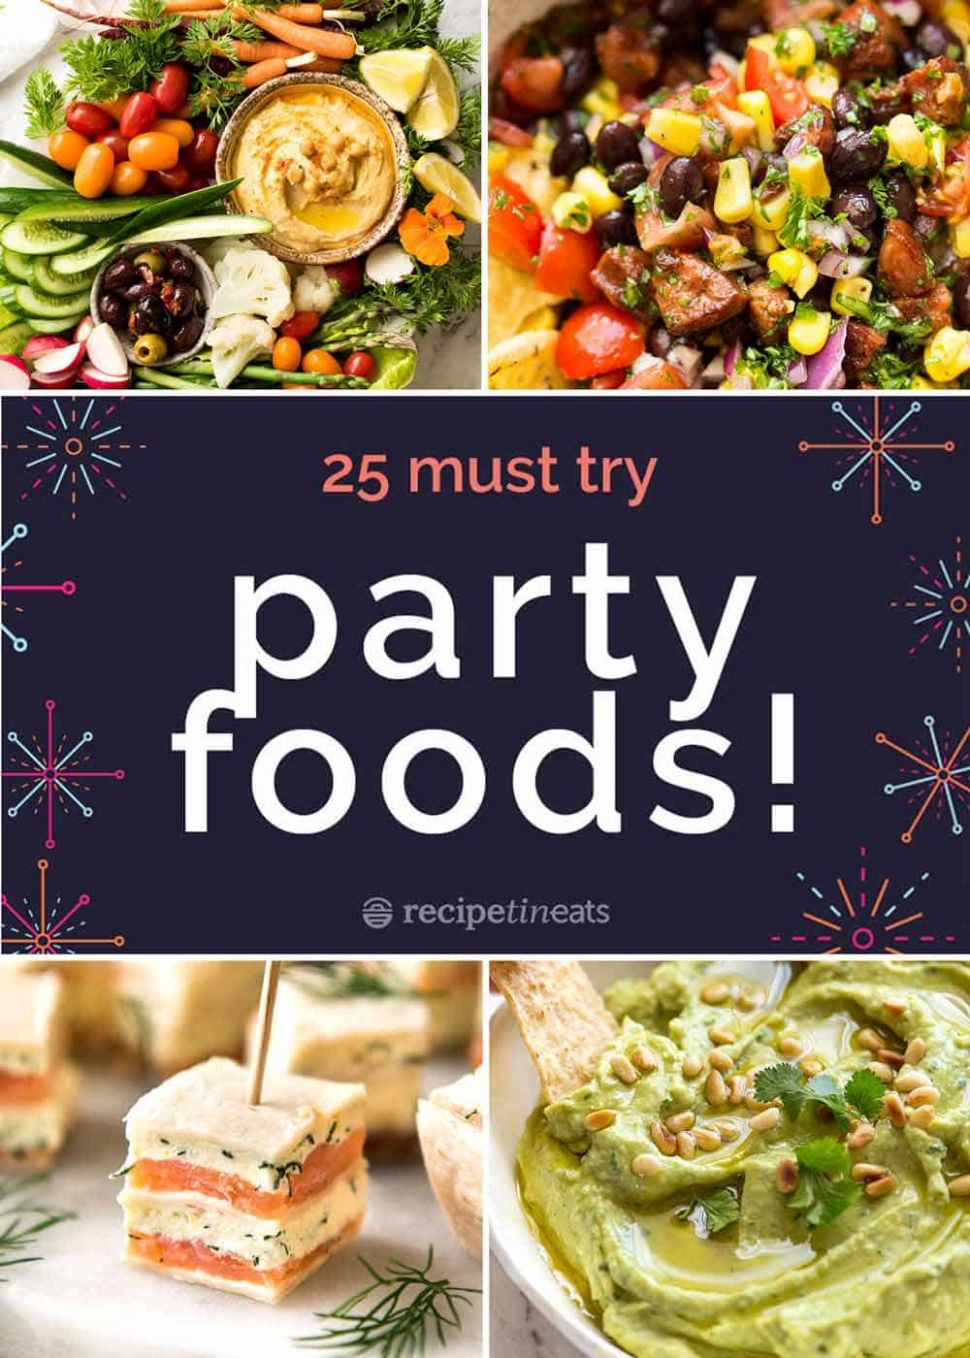 12 BEST Party Food Recipes! - Food Recipes With Pictures